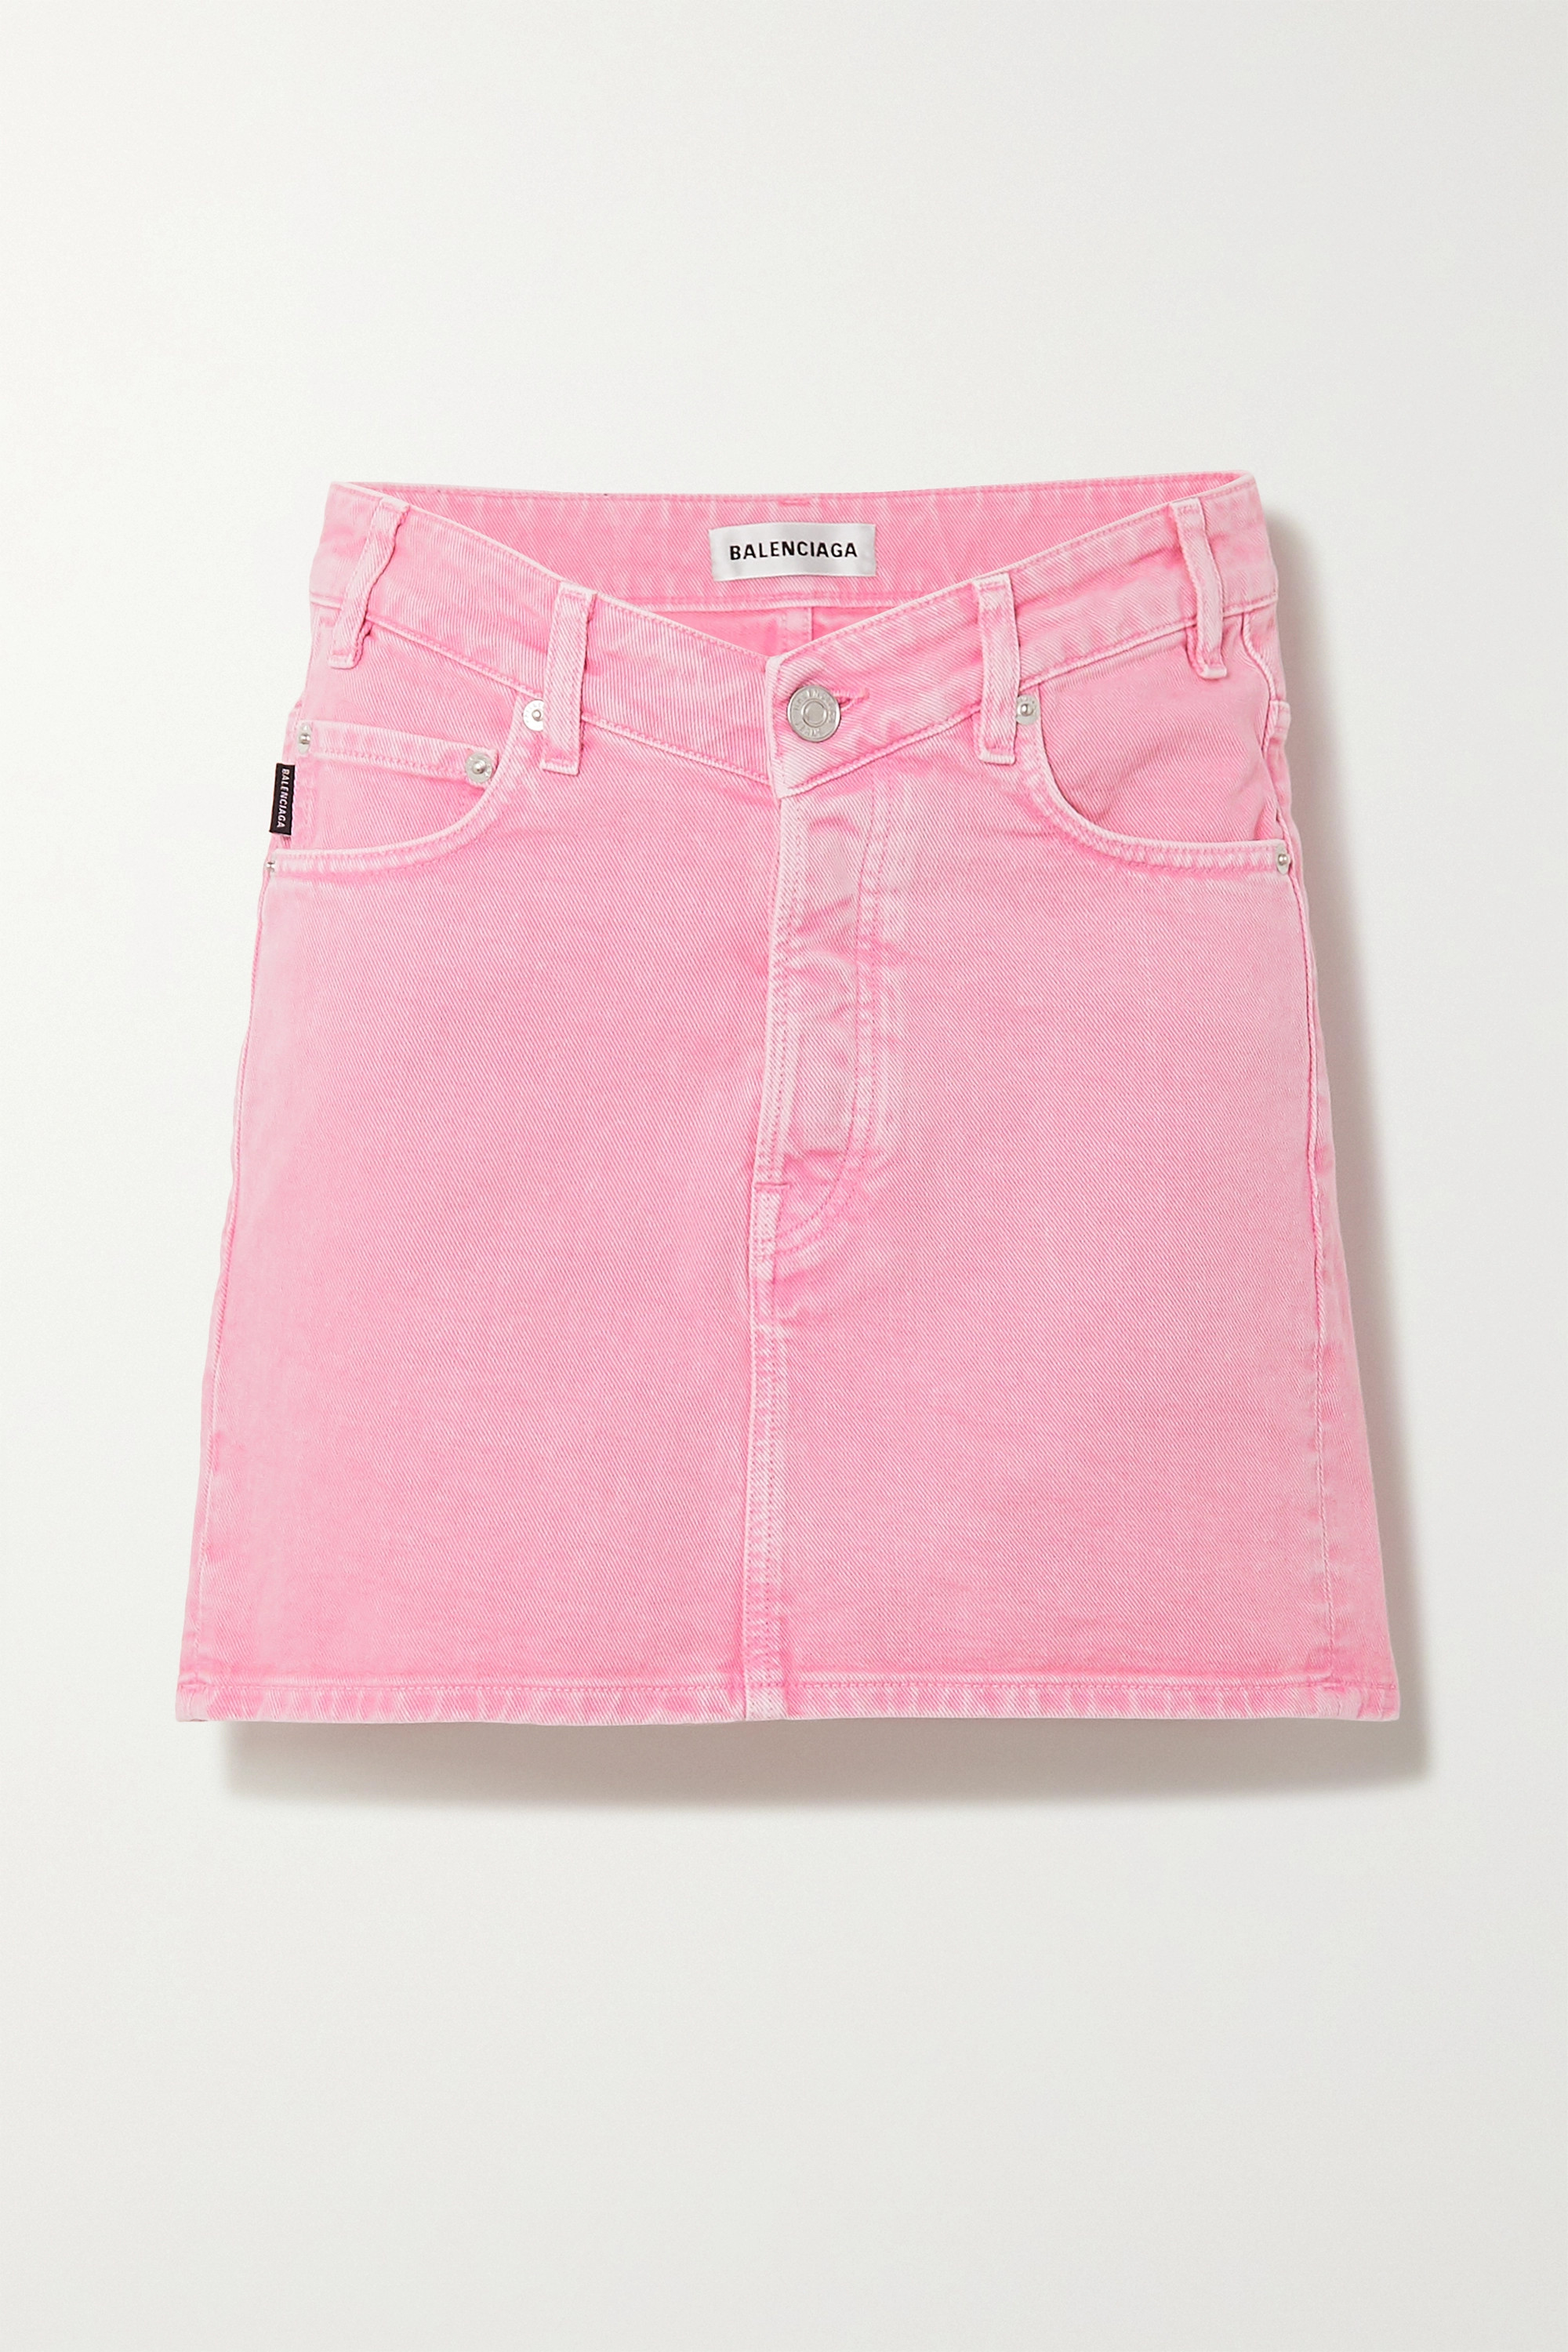 Balenciaga Acid-wash denim mini skirt